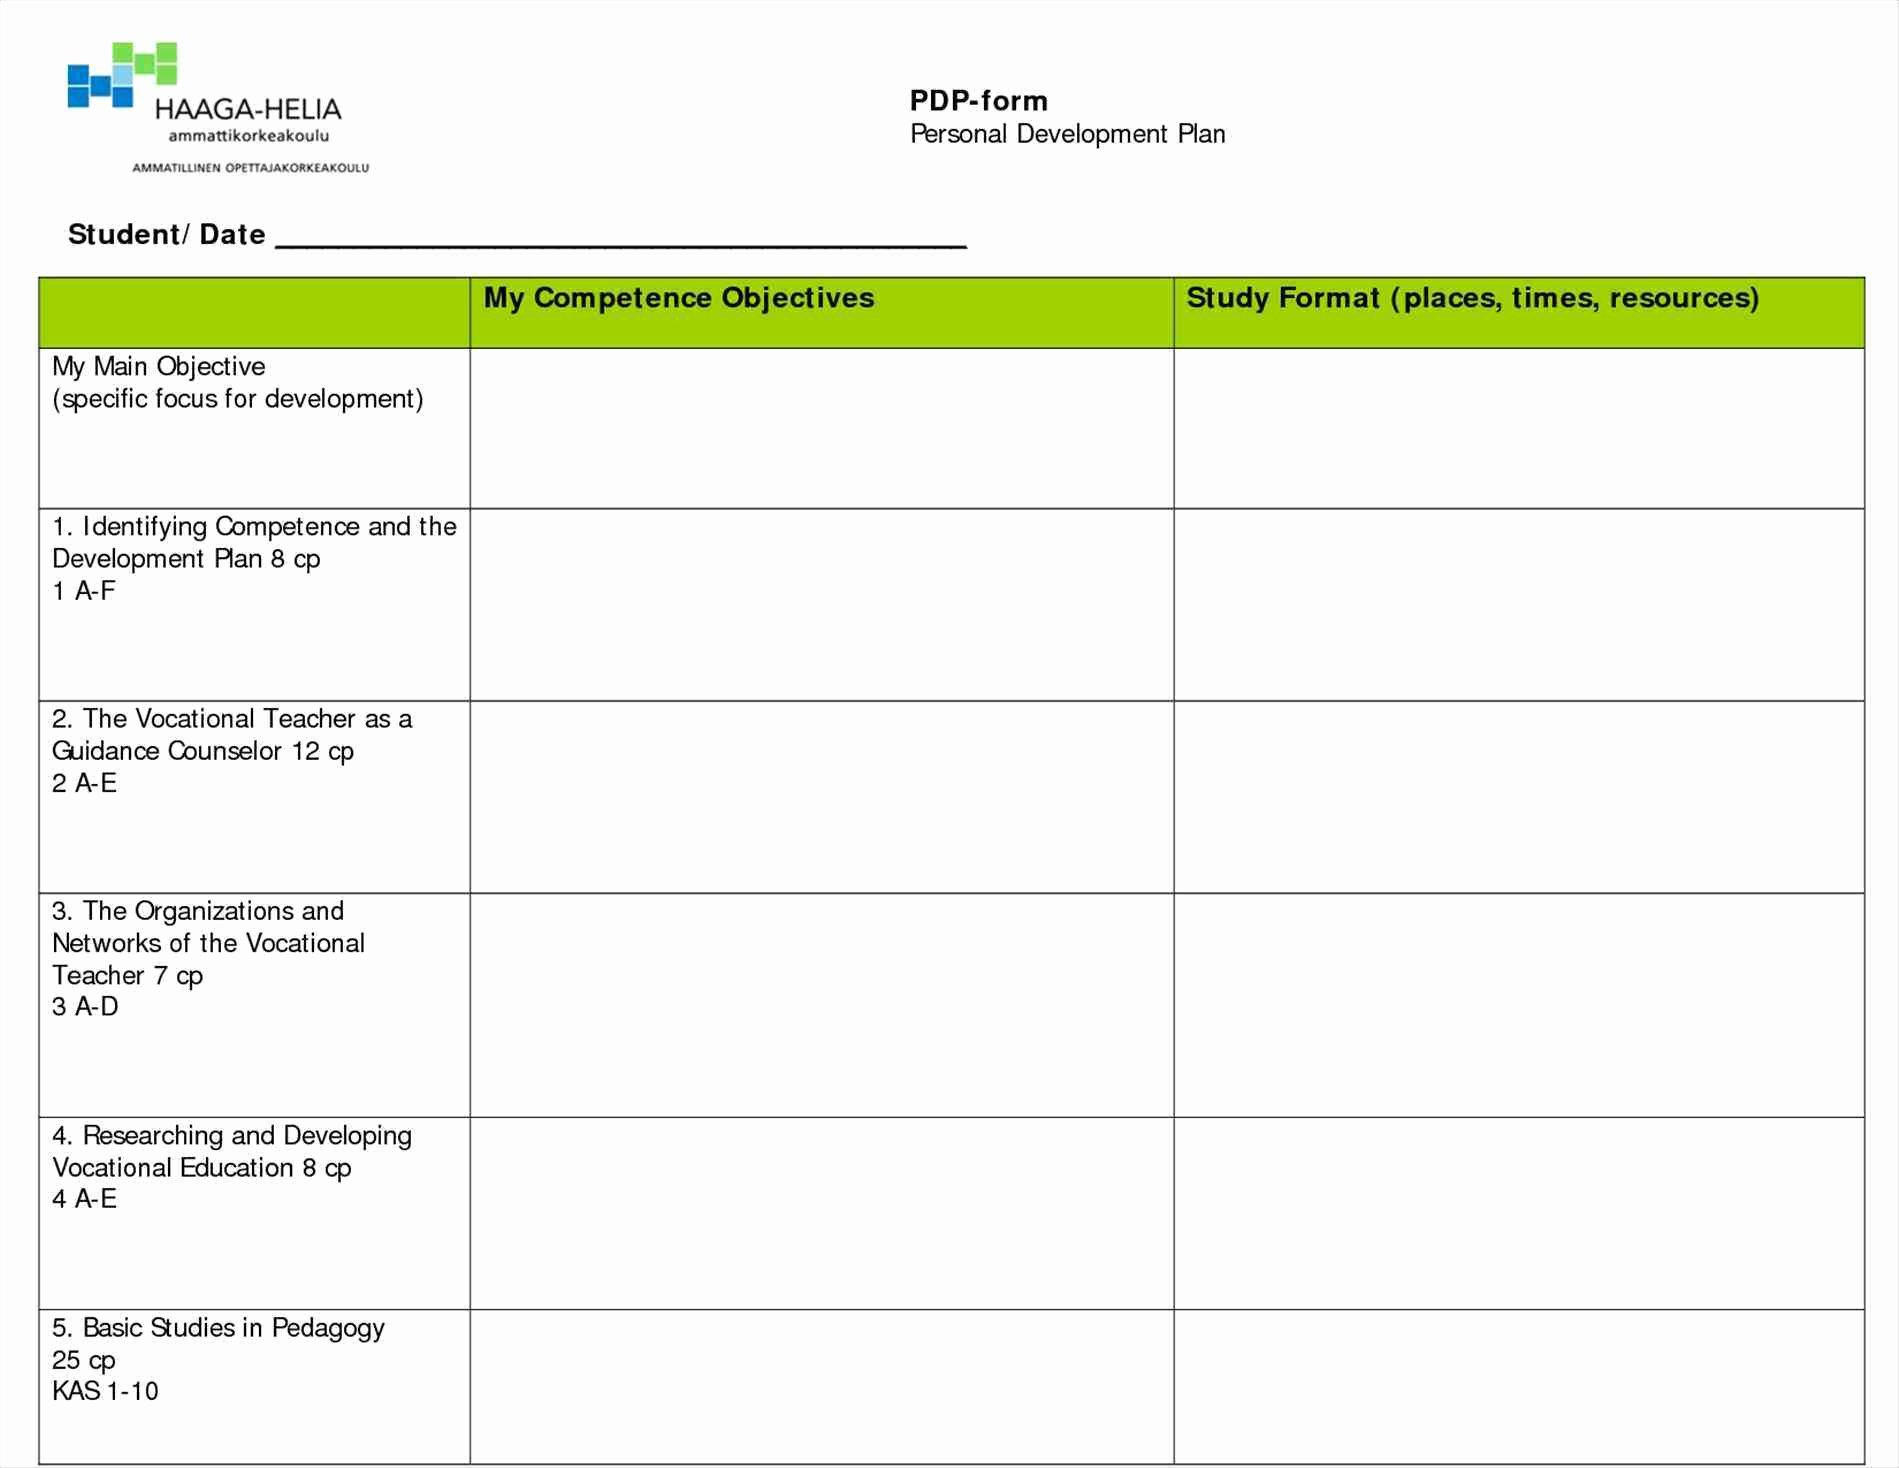 Individual Development Plan Template Excel Luxury Personal Development Plan Template Excel